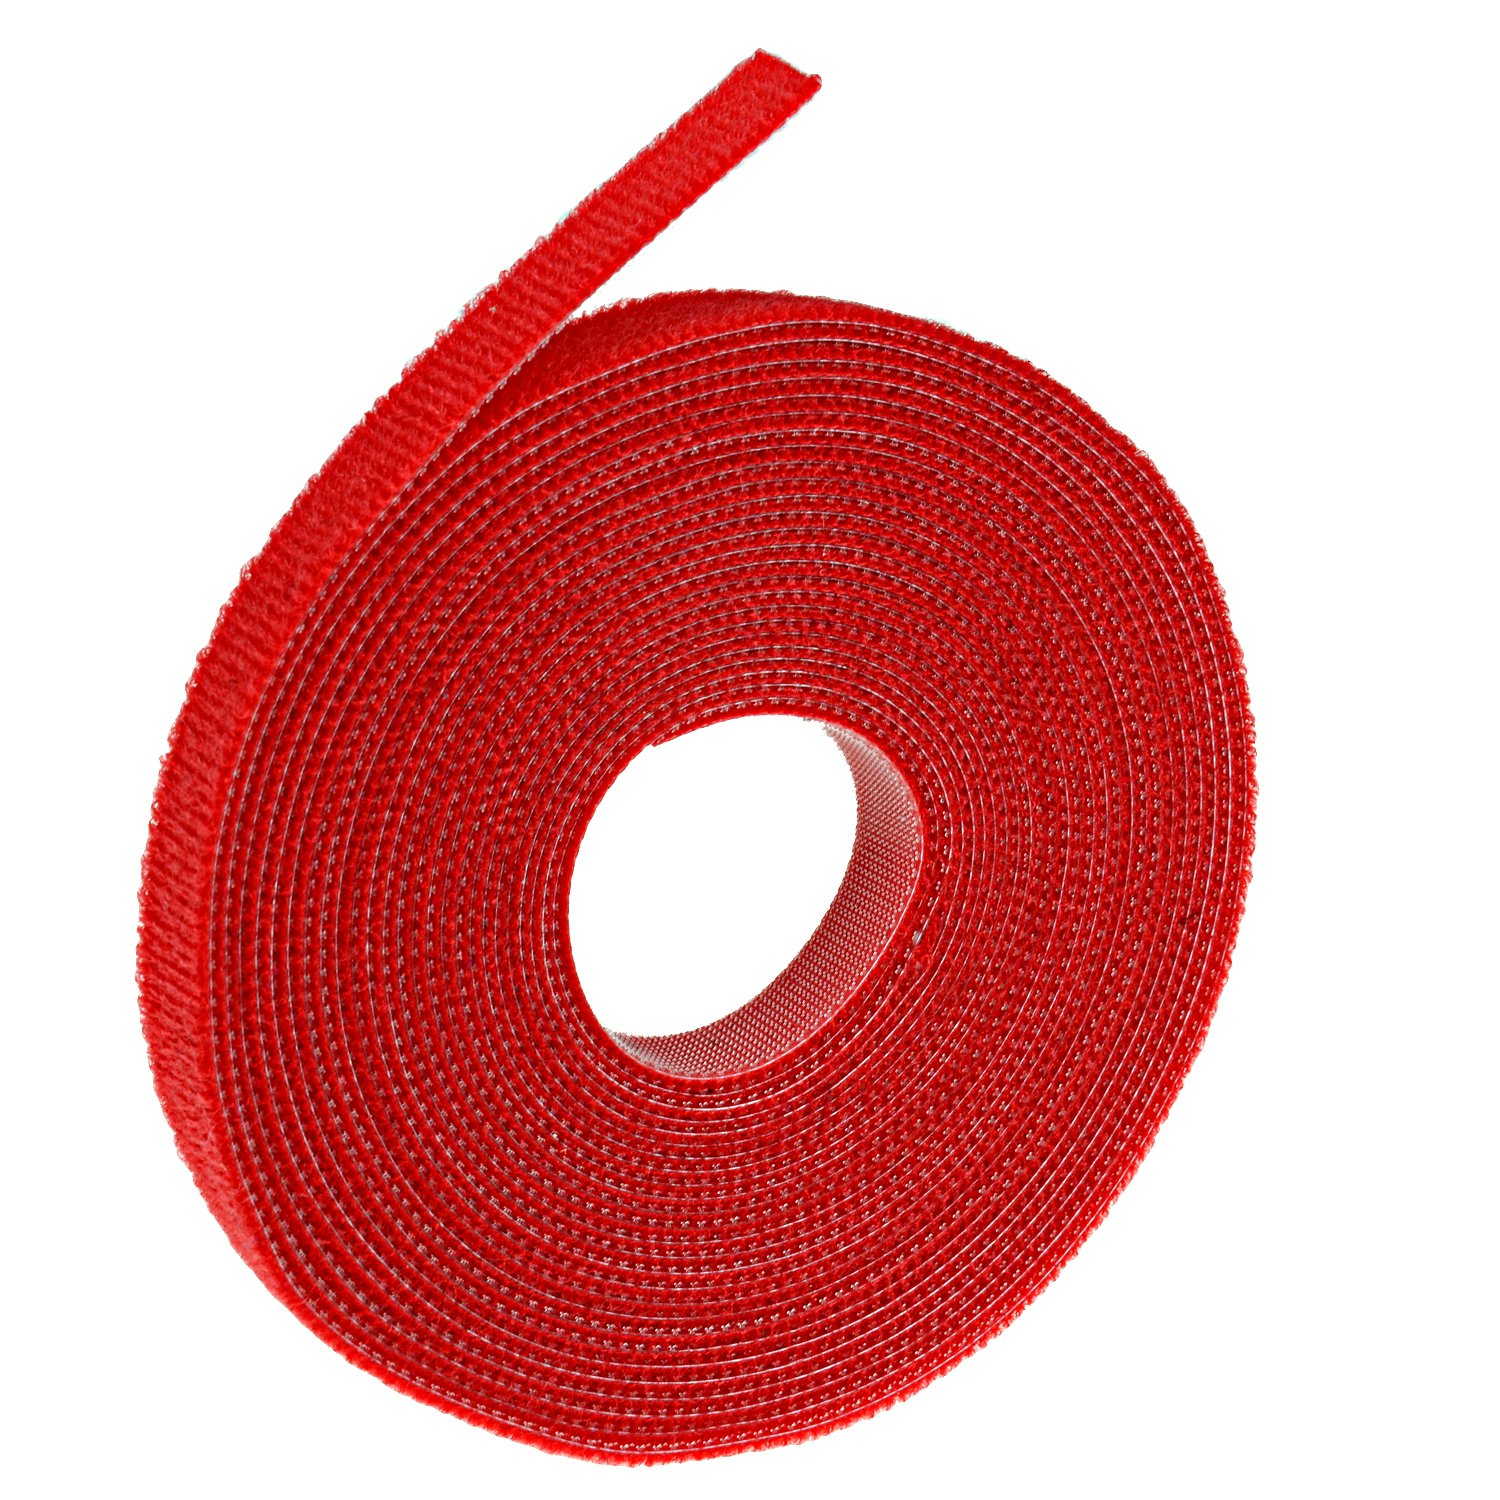 Oldhill Fastening Tapes Hook and Loop Reusable Straps Wires Cords Cable Ties - 1/2 Width, 15' x 3 Rolls (Black, Red, White) 15' x 3 Rolls (Black